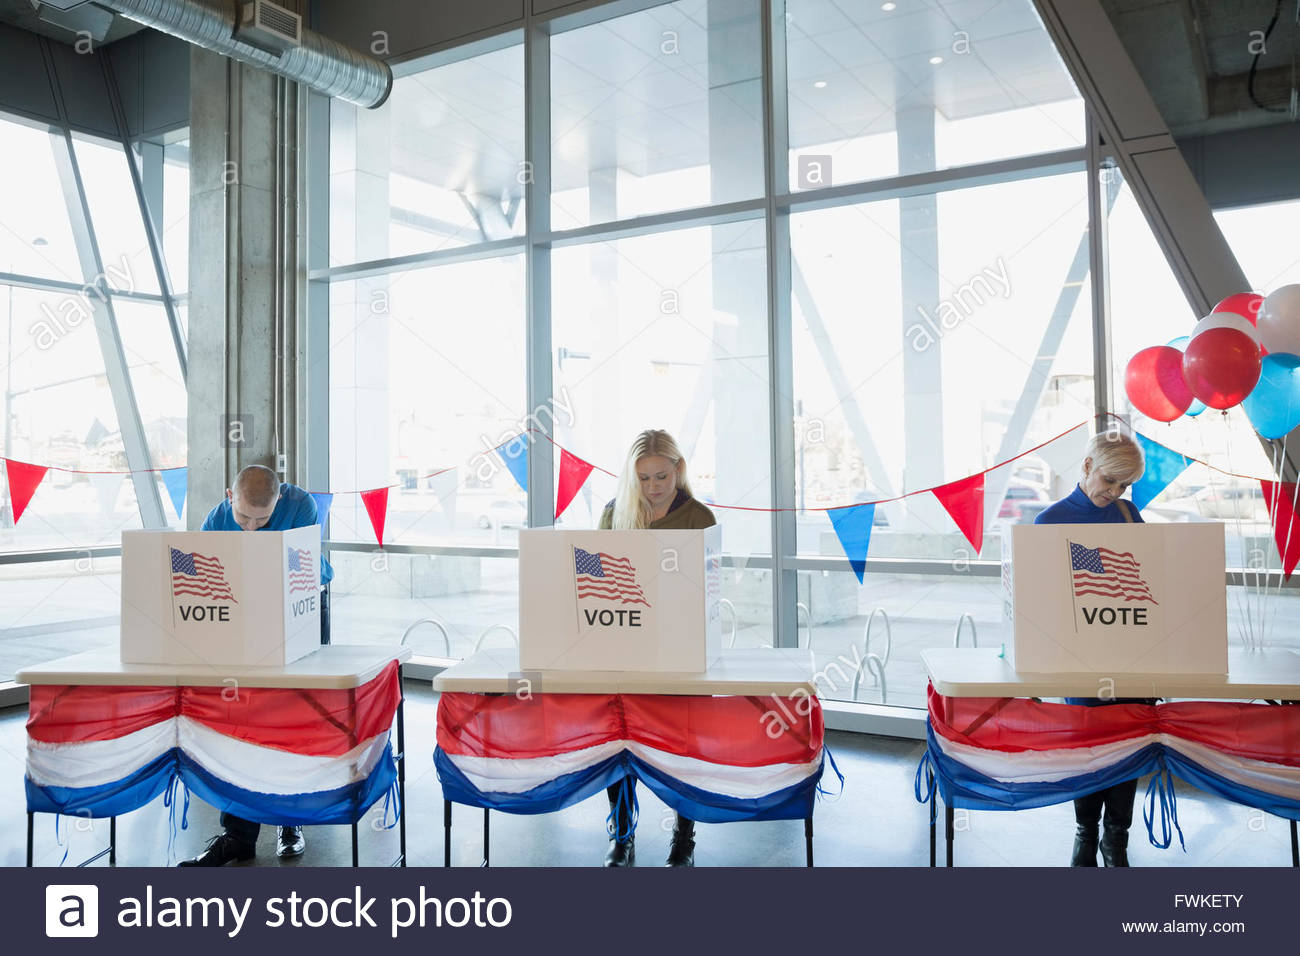 People in voting booths at polling place - Stock Image